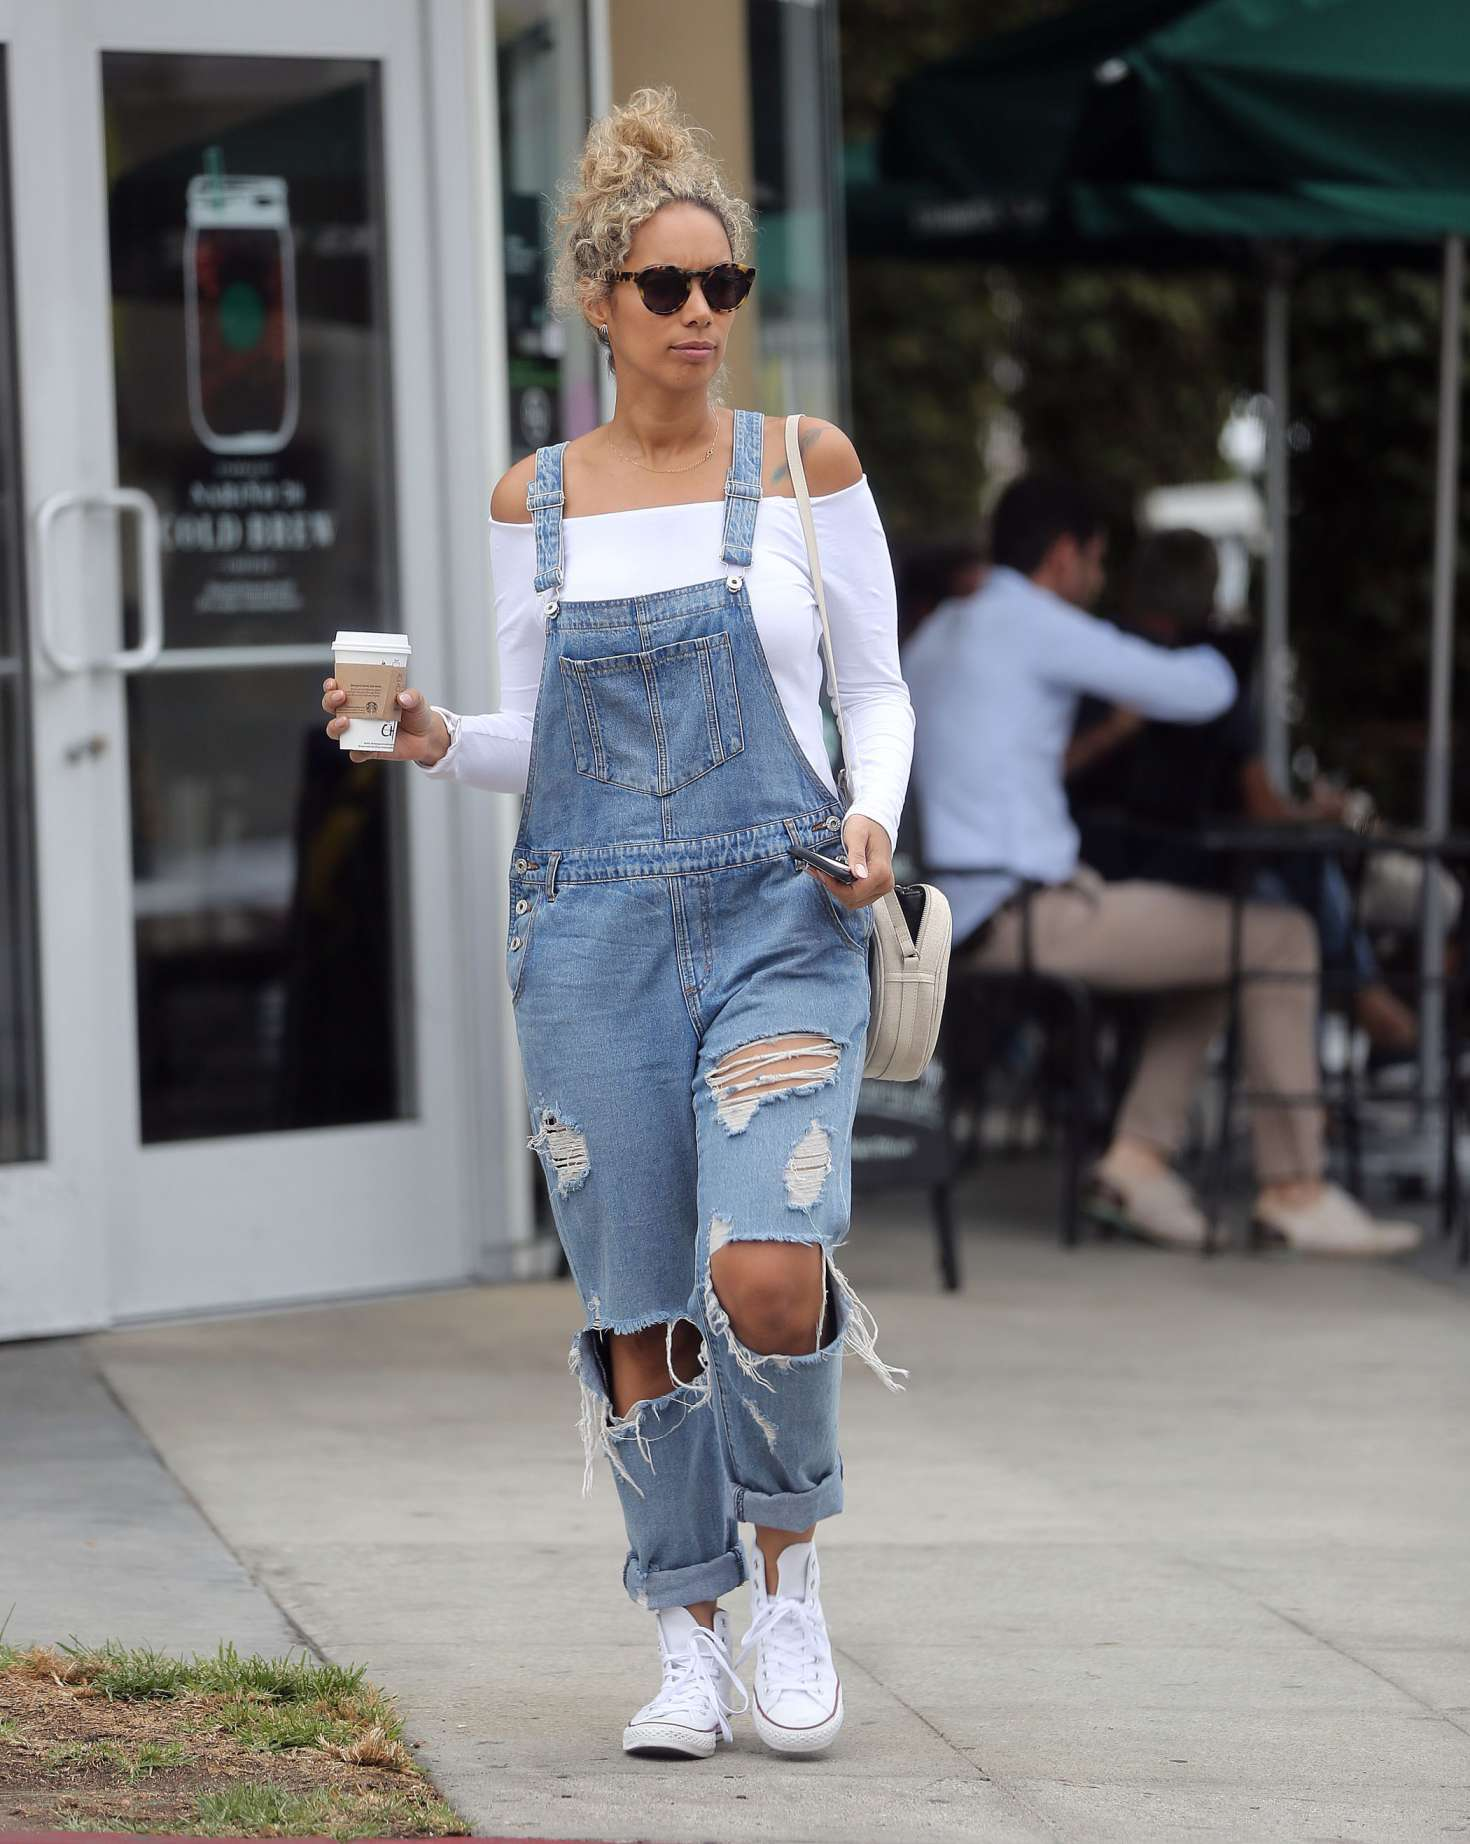 Leona Lewis 2016 : Leona Lewis out shopping in Los Angeles -16